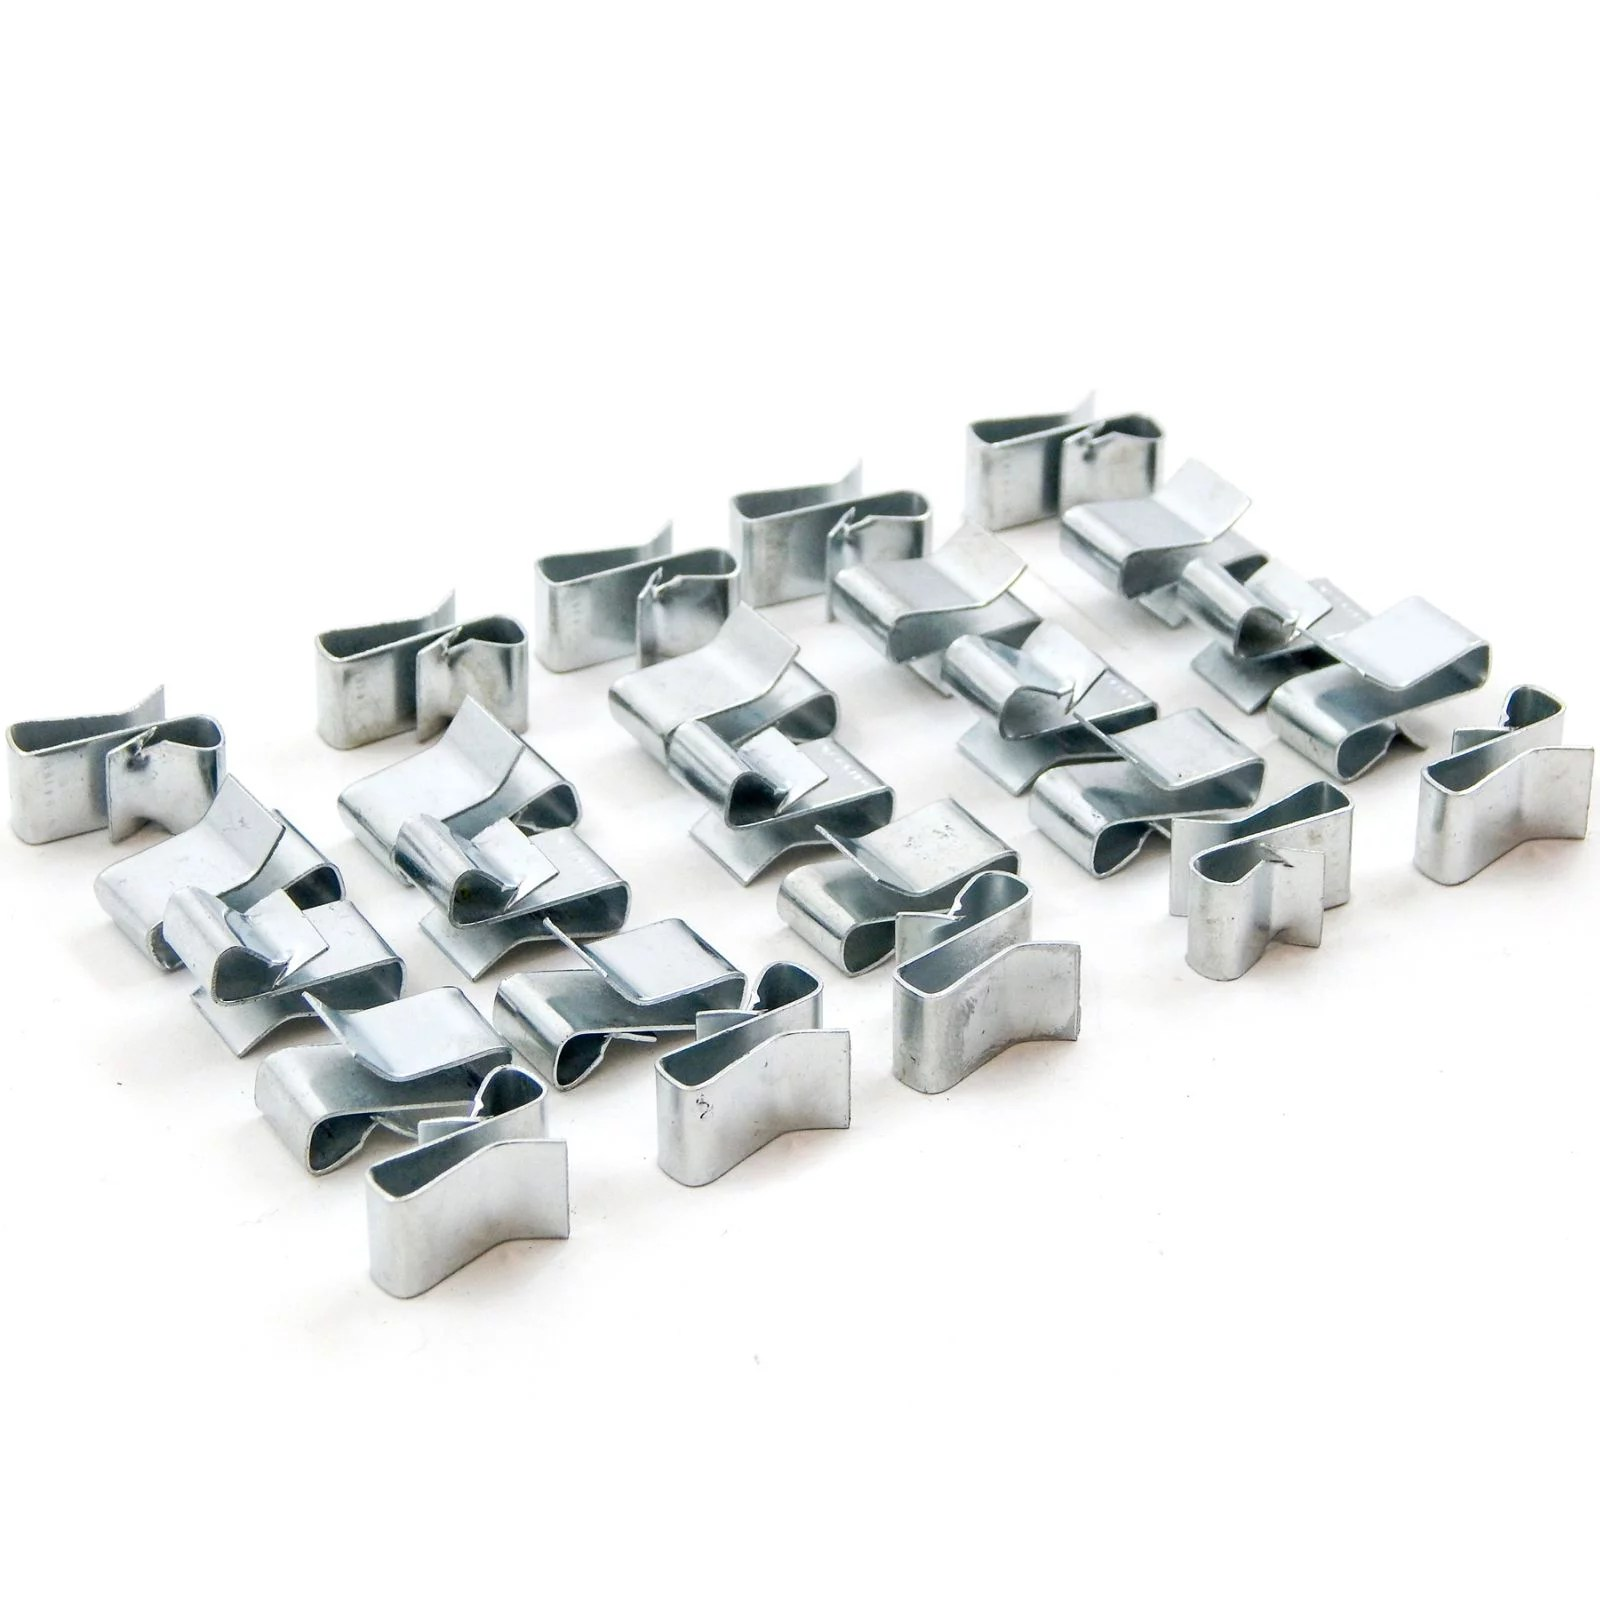 hight resolution of trailer wiring clips package of 25 attach wiring to frame hide protect walmart com